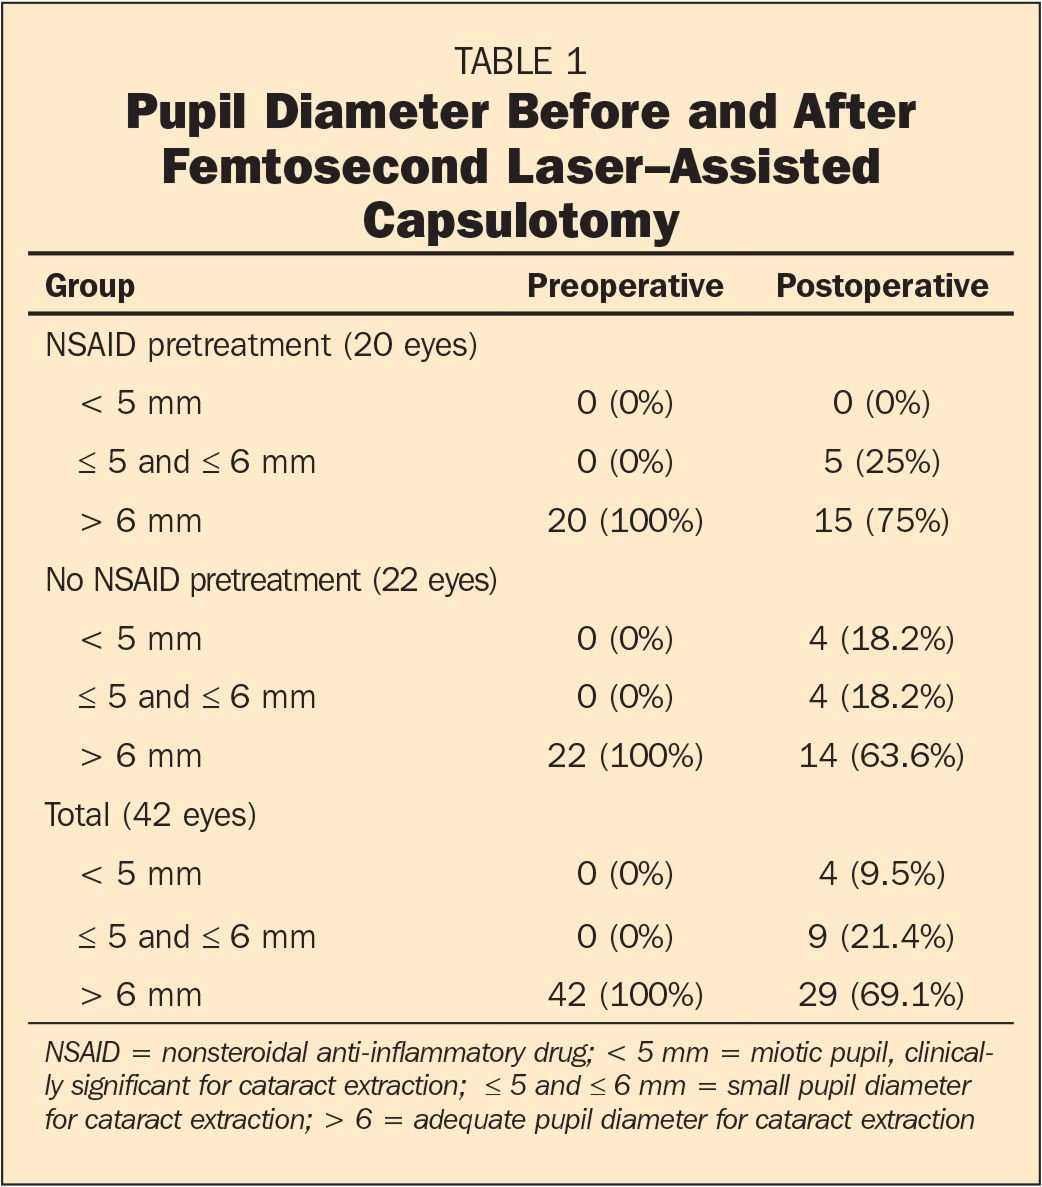 Pupil Diameter Before and After Femtosecond Laser–Assisted Capsulotomy